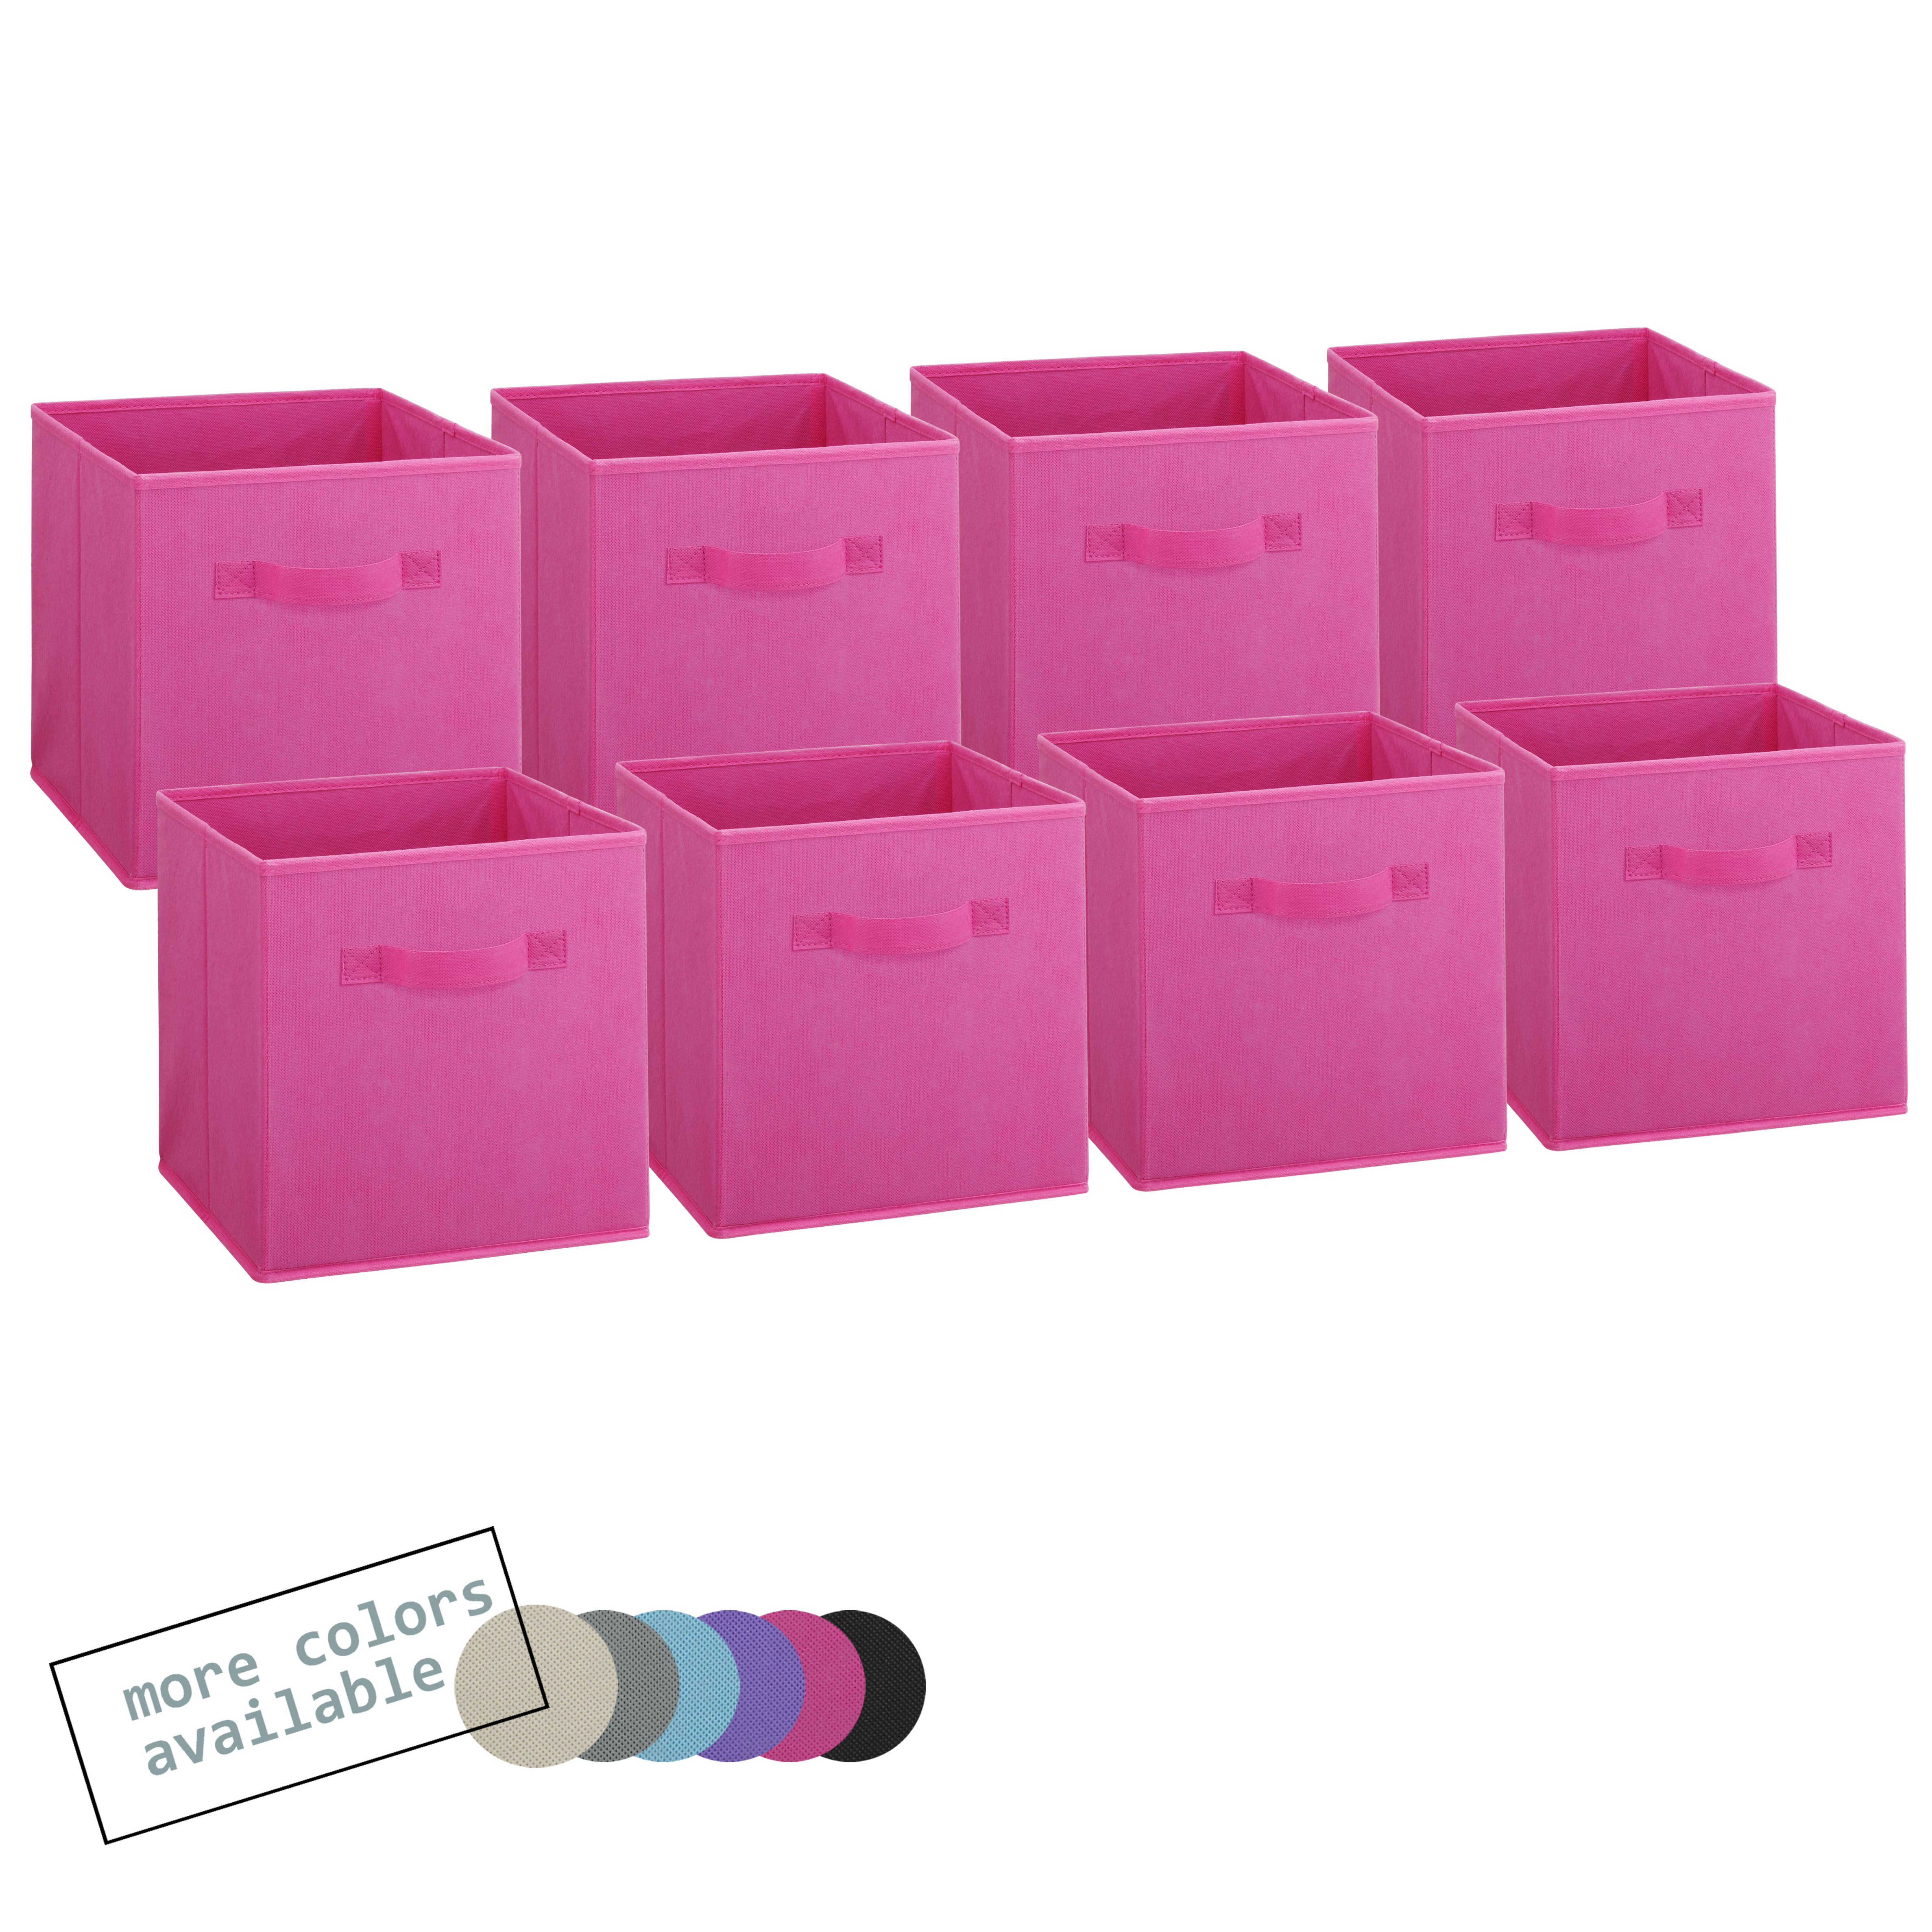 Foldable fabric storage cubes pink